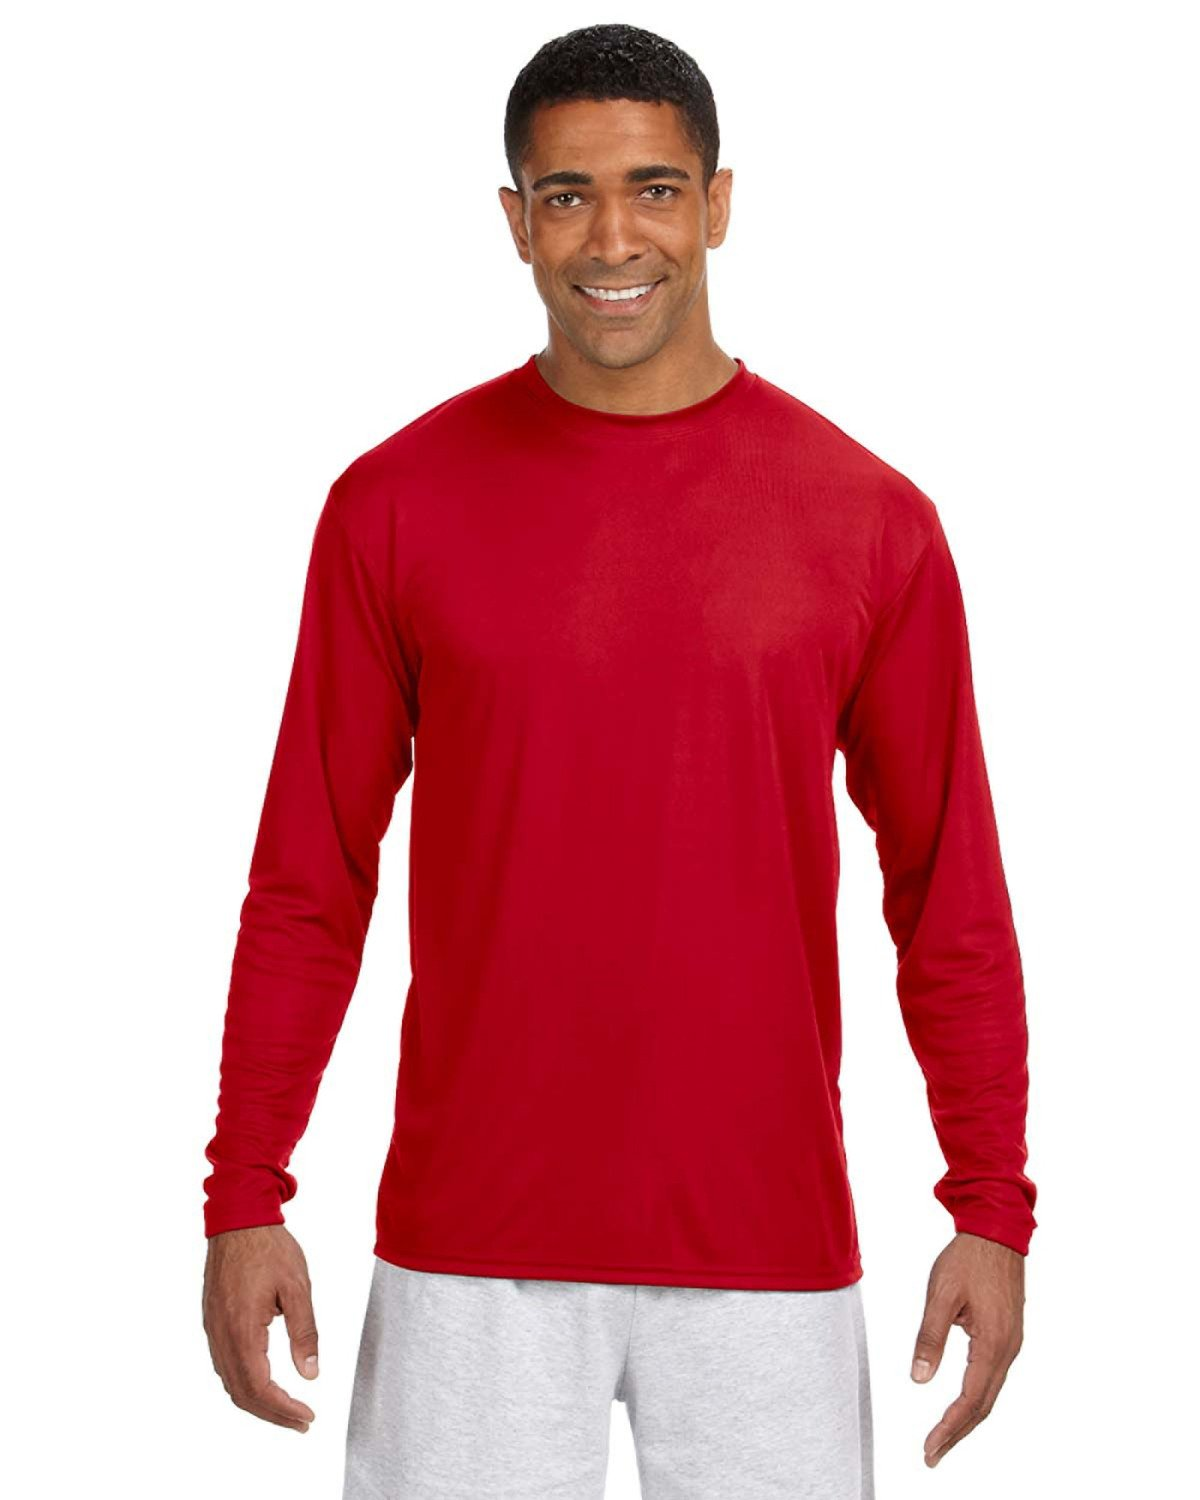 A4 Men's Cooling Performance Long Sleeve T-Shirt SCARLET